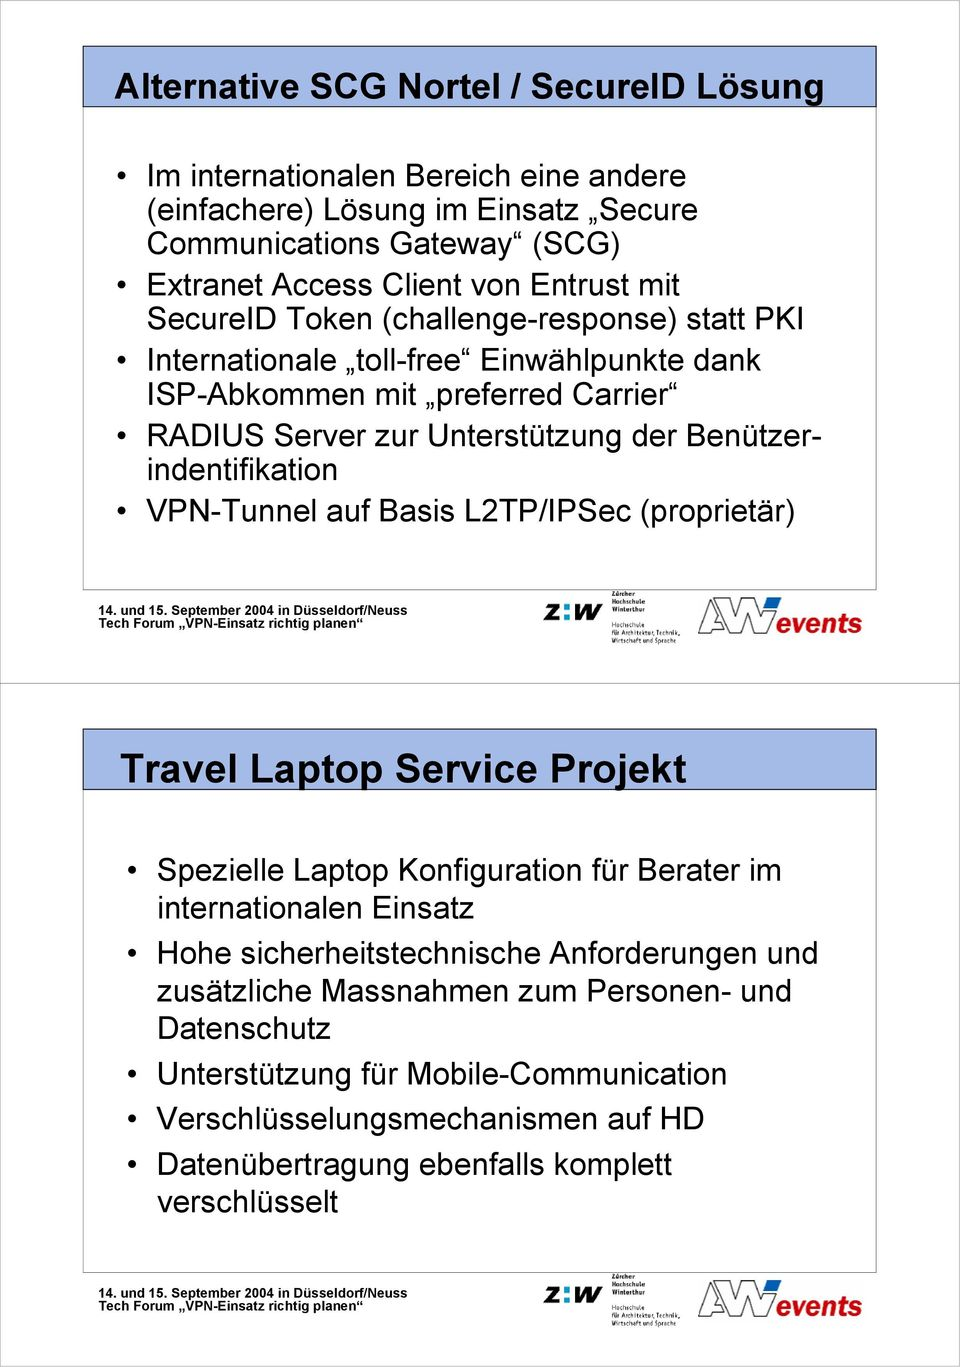 Benützerindentifikation VPN-Tunnel auf Basis L2TP/IPSec (proprietär) Travel Laptop Service Projekt Spezielle Laptop Konfiguration für Berater im internationalen Einsatz Hohe